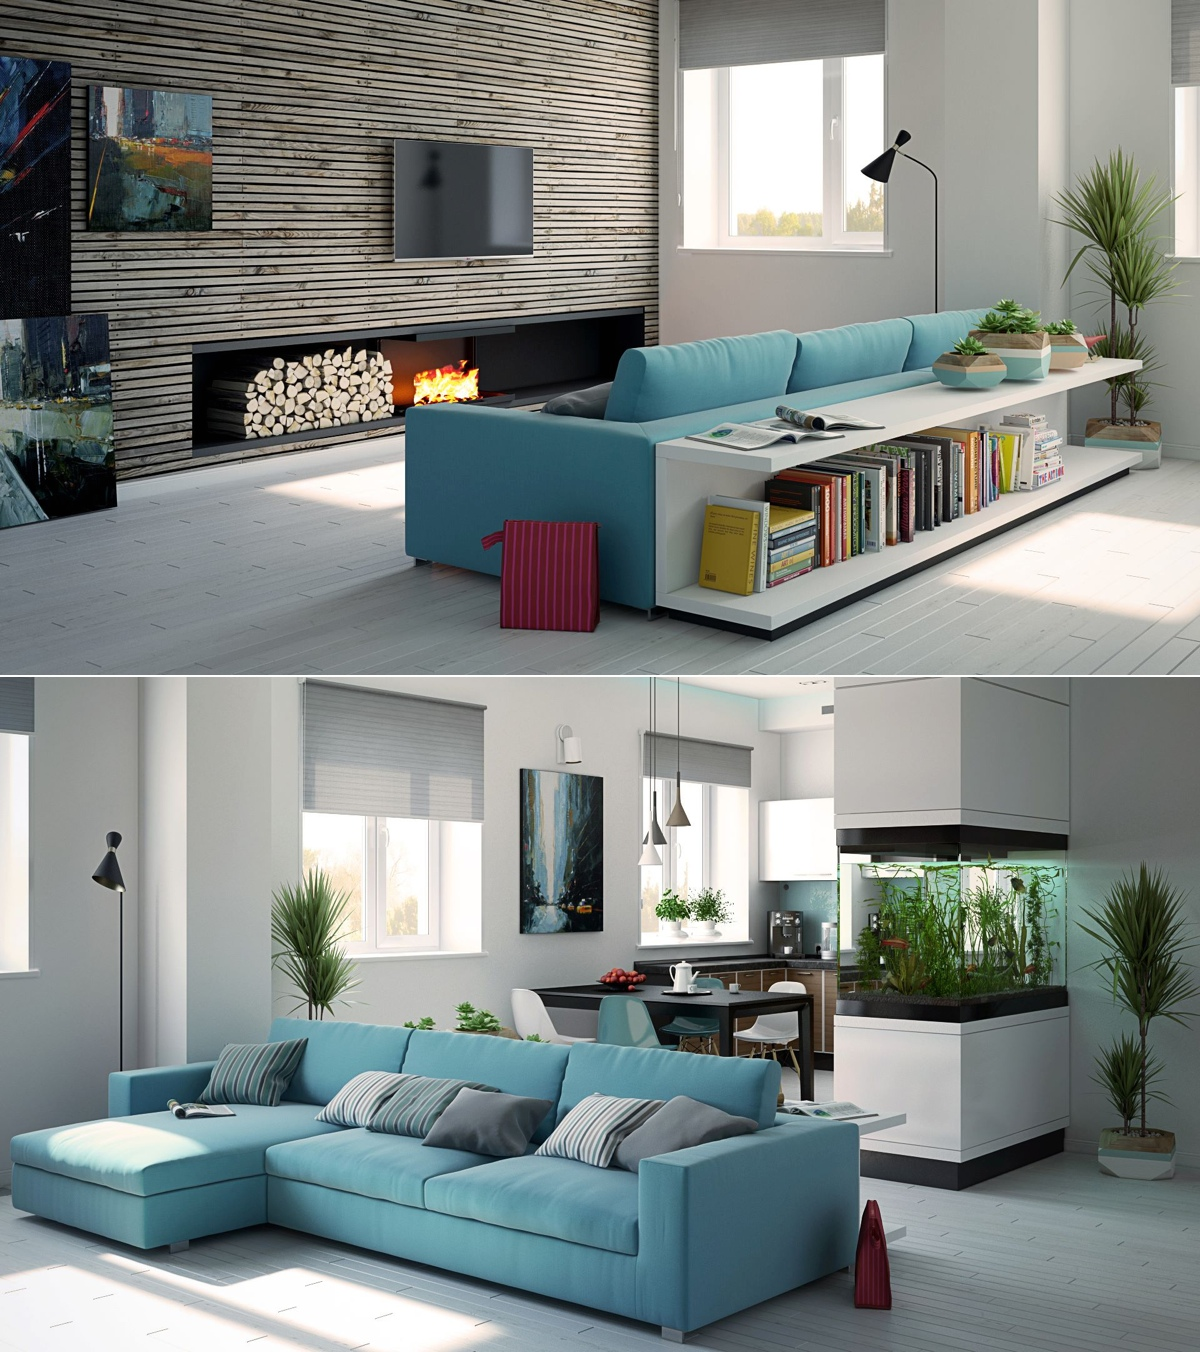 Awesomely Stylish Urban Living Rooms. Bright Blue Living Room. Urban Living Room Furniture. Beech Furniture Living Room. Accent Pillows For Living Room. What Size Rug In Living Room. Highland Themed Living Room. Wall Units For Living Rooms. Ottomans For Living Room